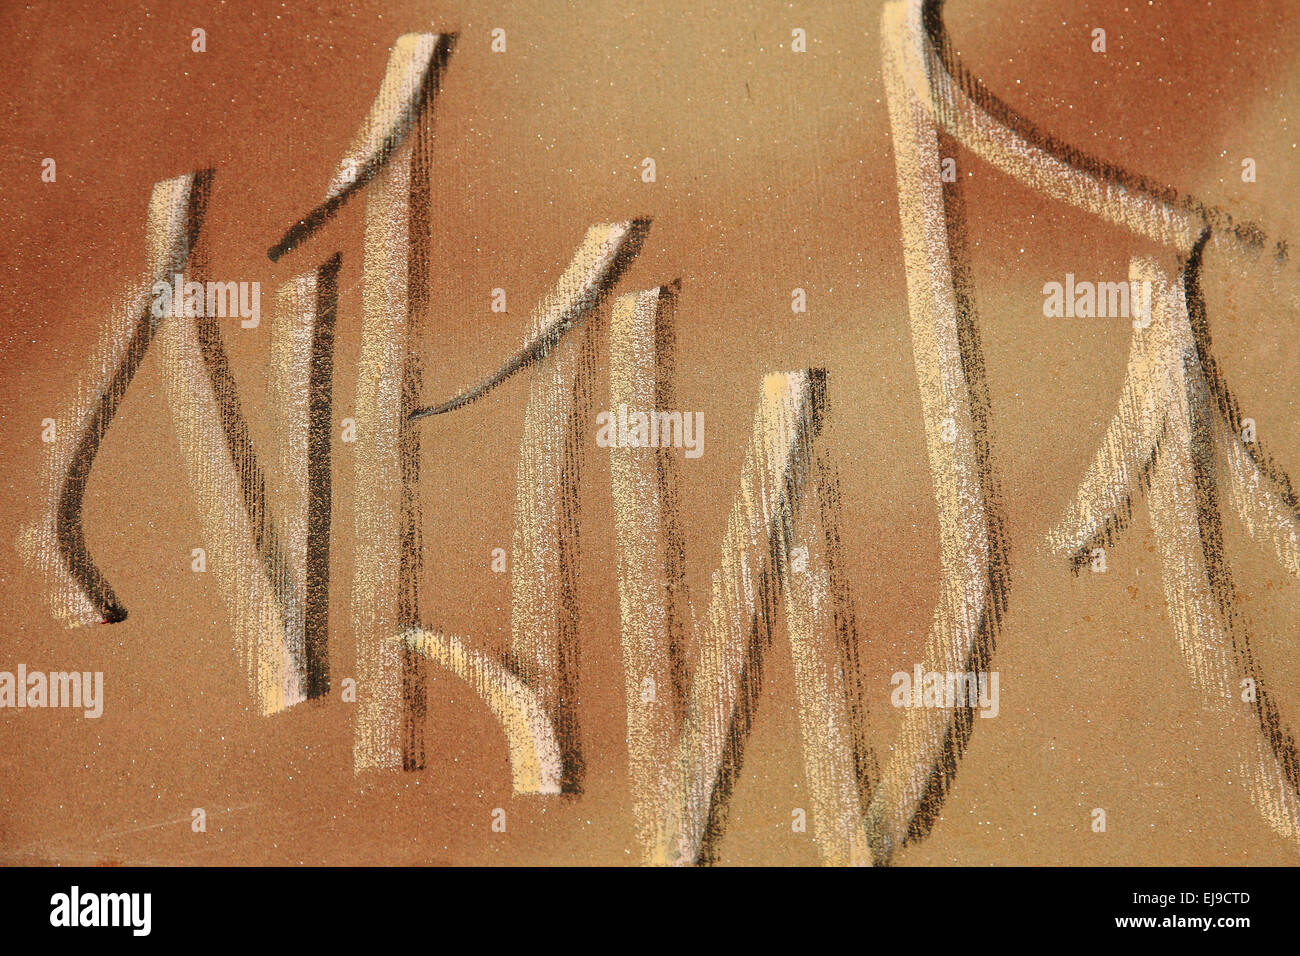 Graffito brown tones - Stock Image